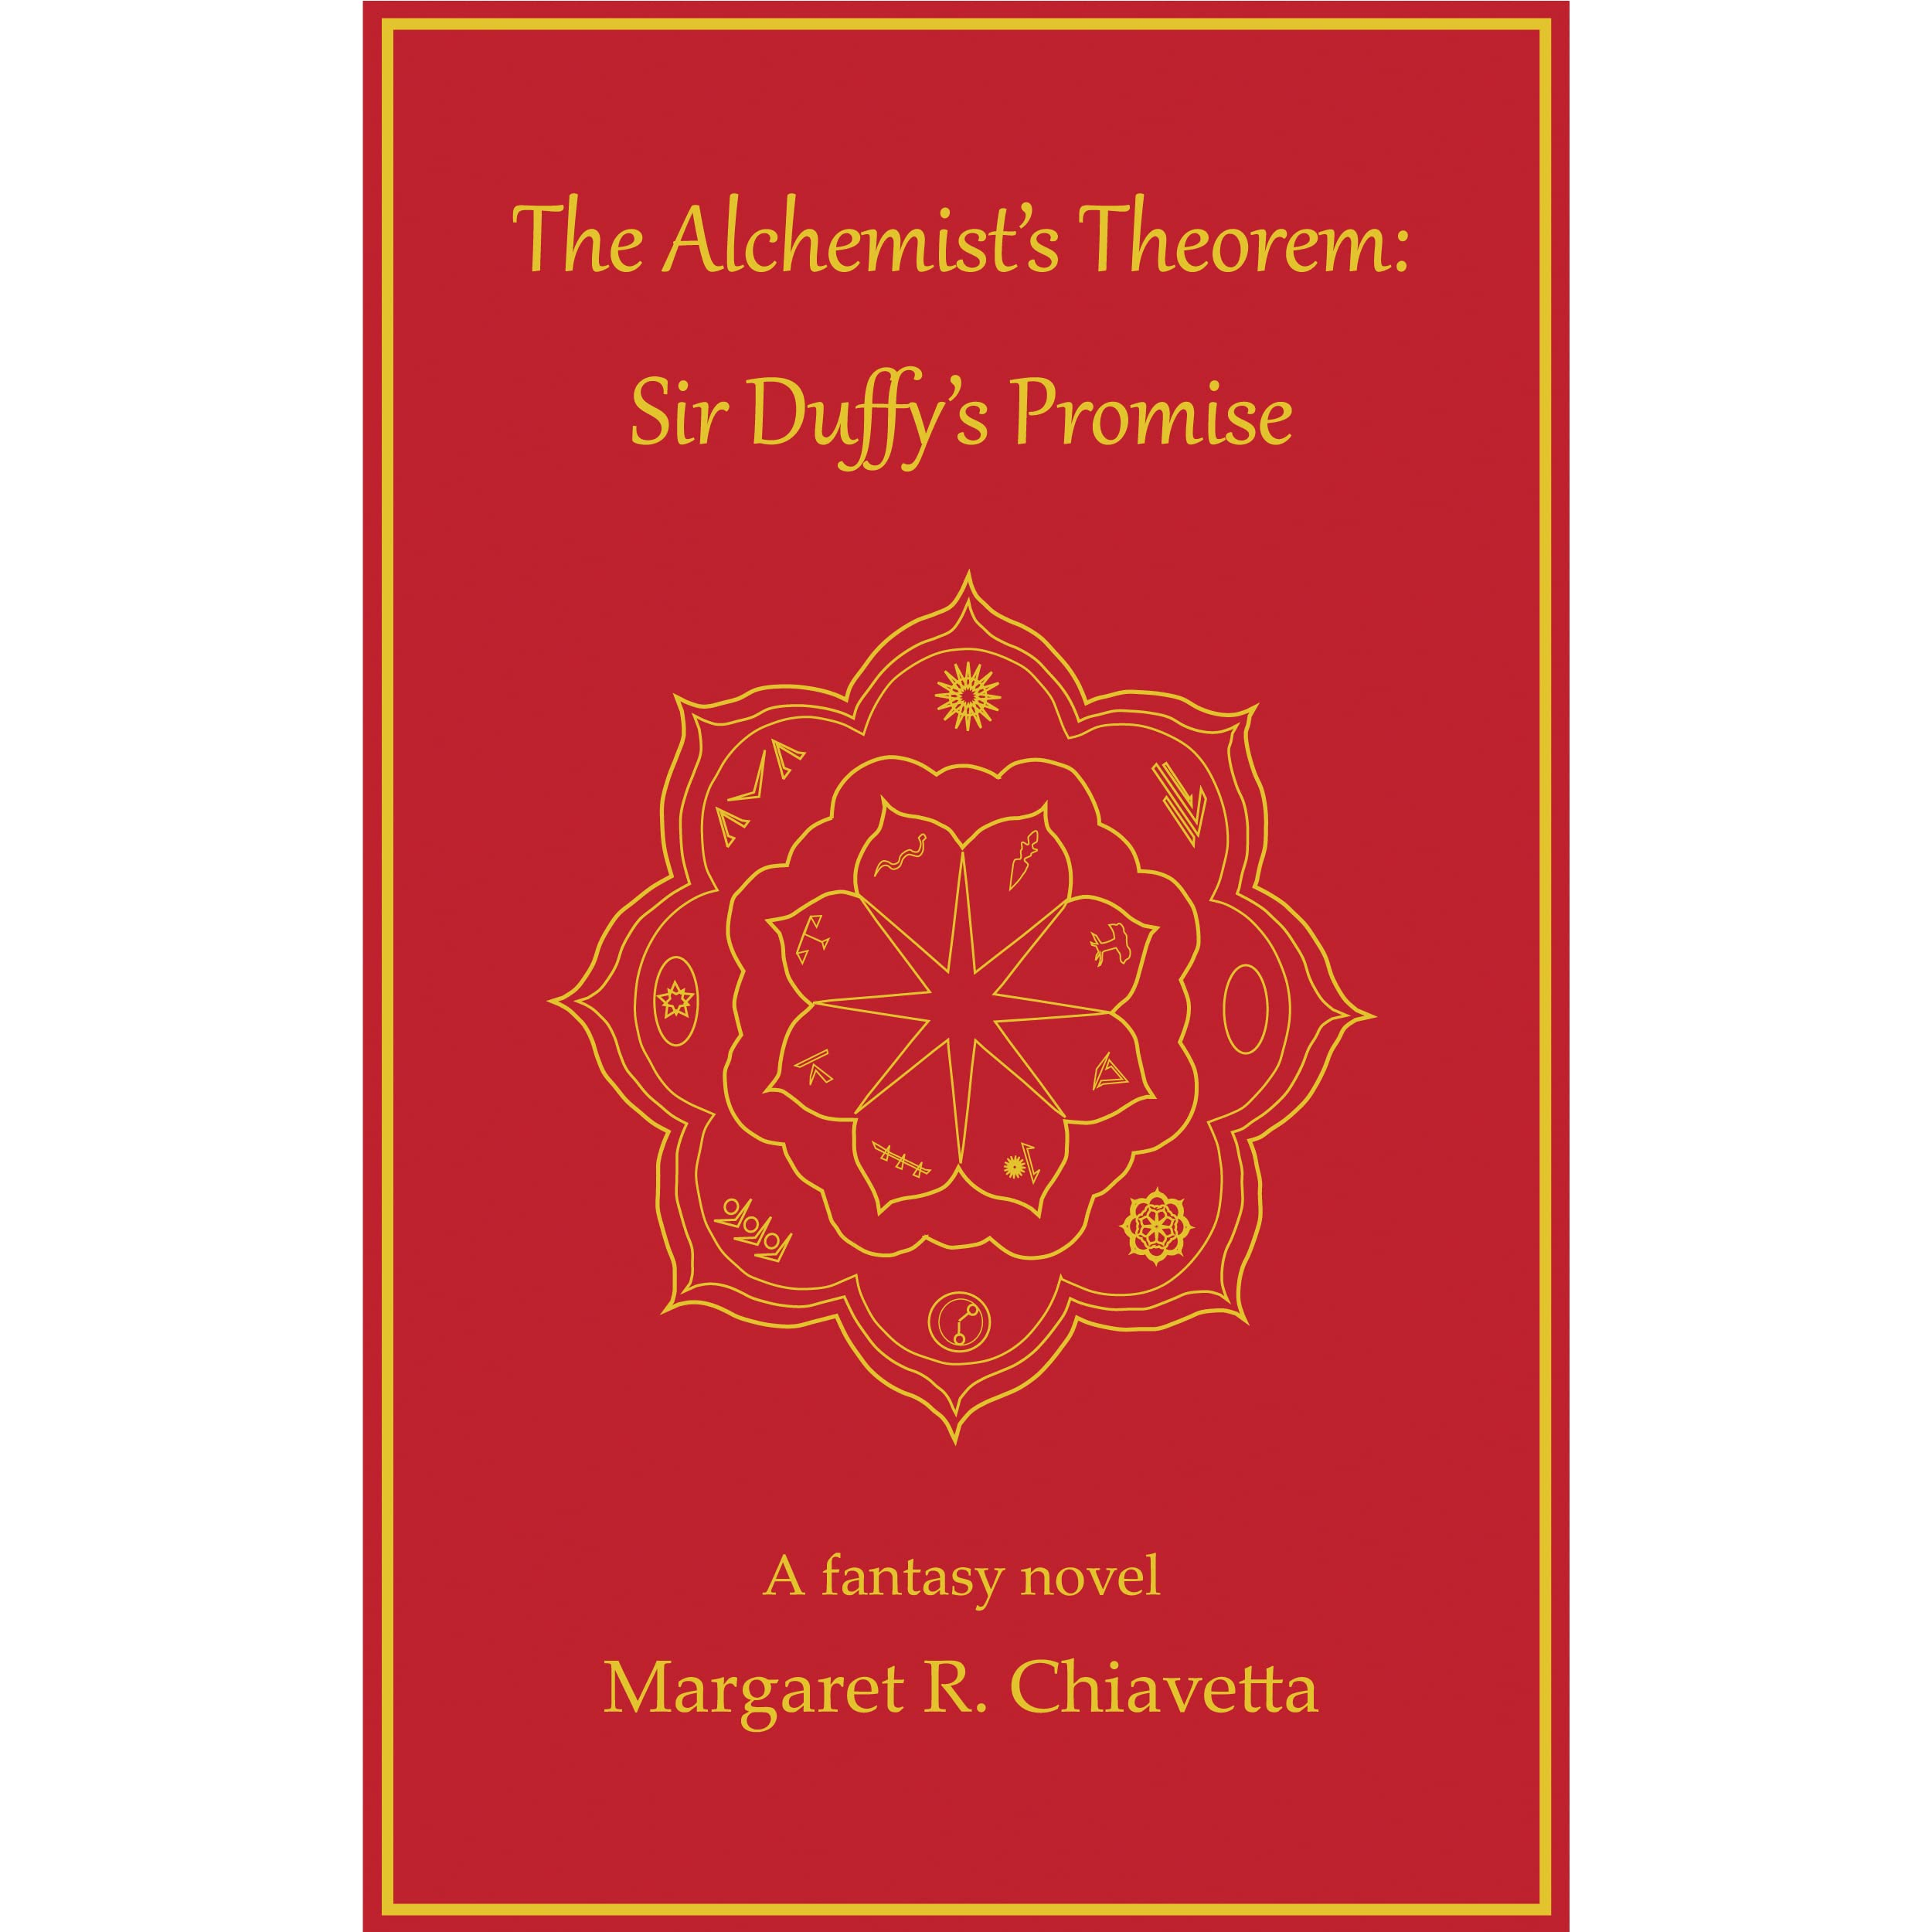 sir duffy s promise the alchemist s theorem book 1 by margaret sir duffy s promise the alchemist s theorem book 1 by margaret r chiavetta reviews discussion bookclubs lists